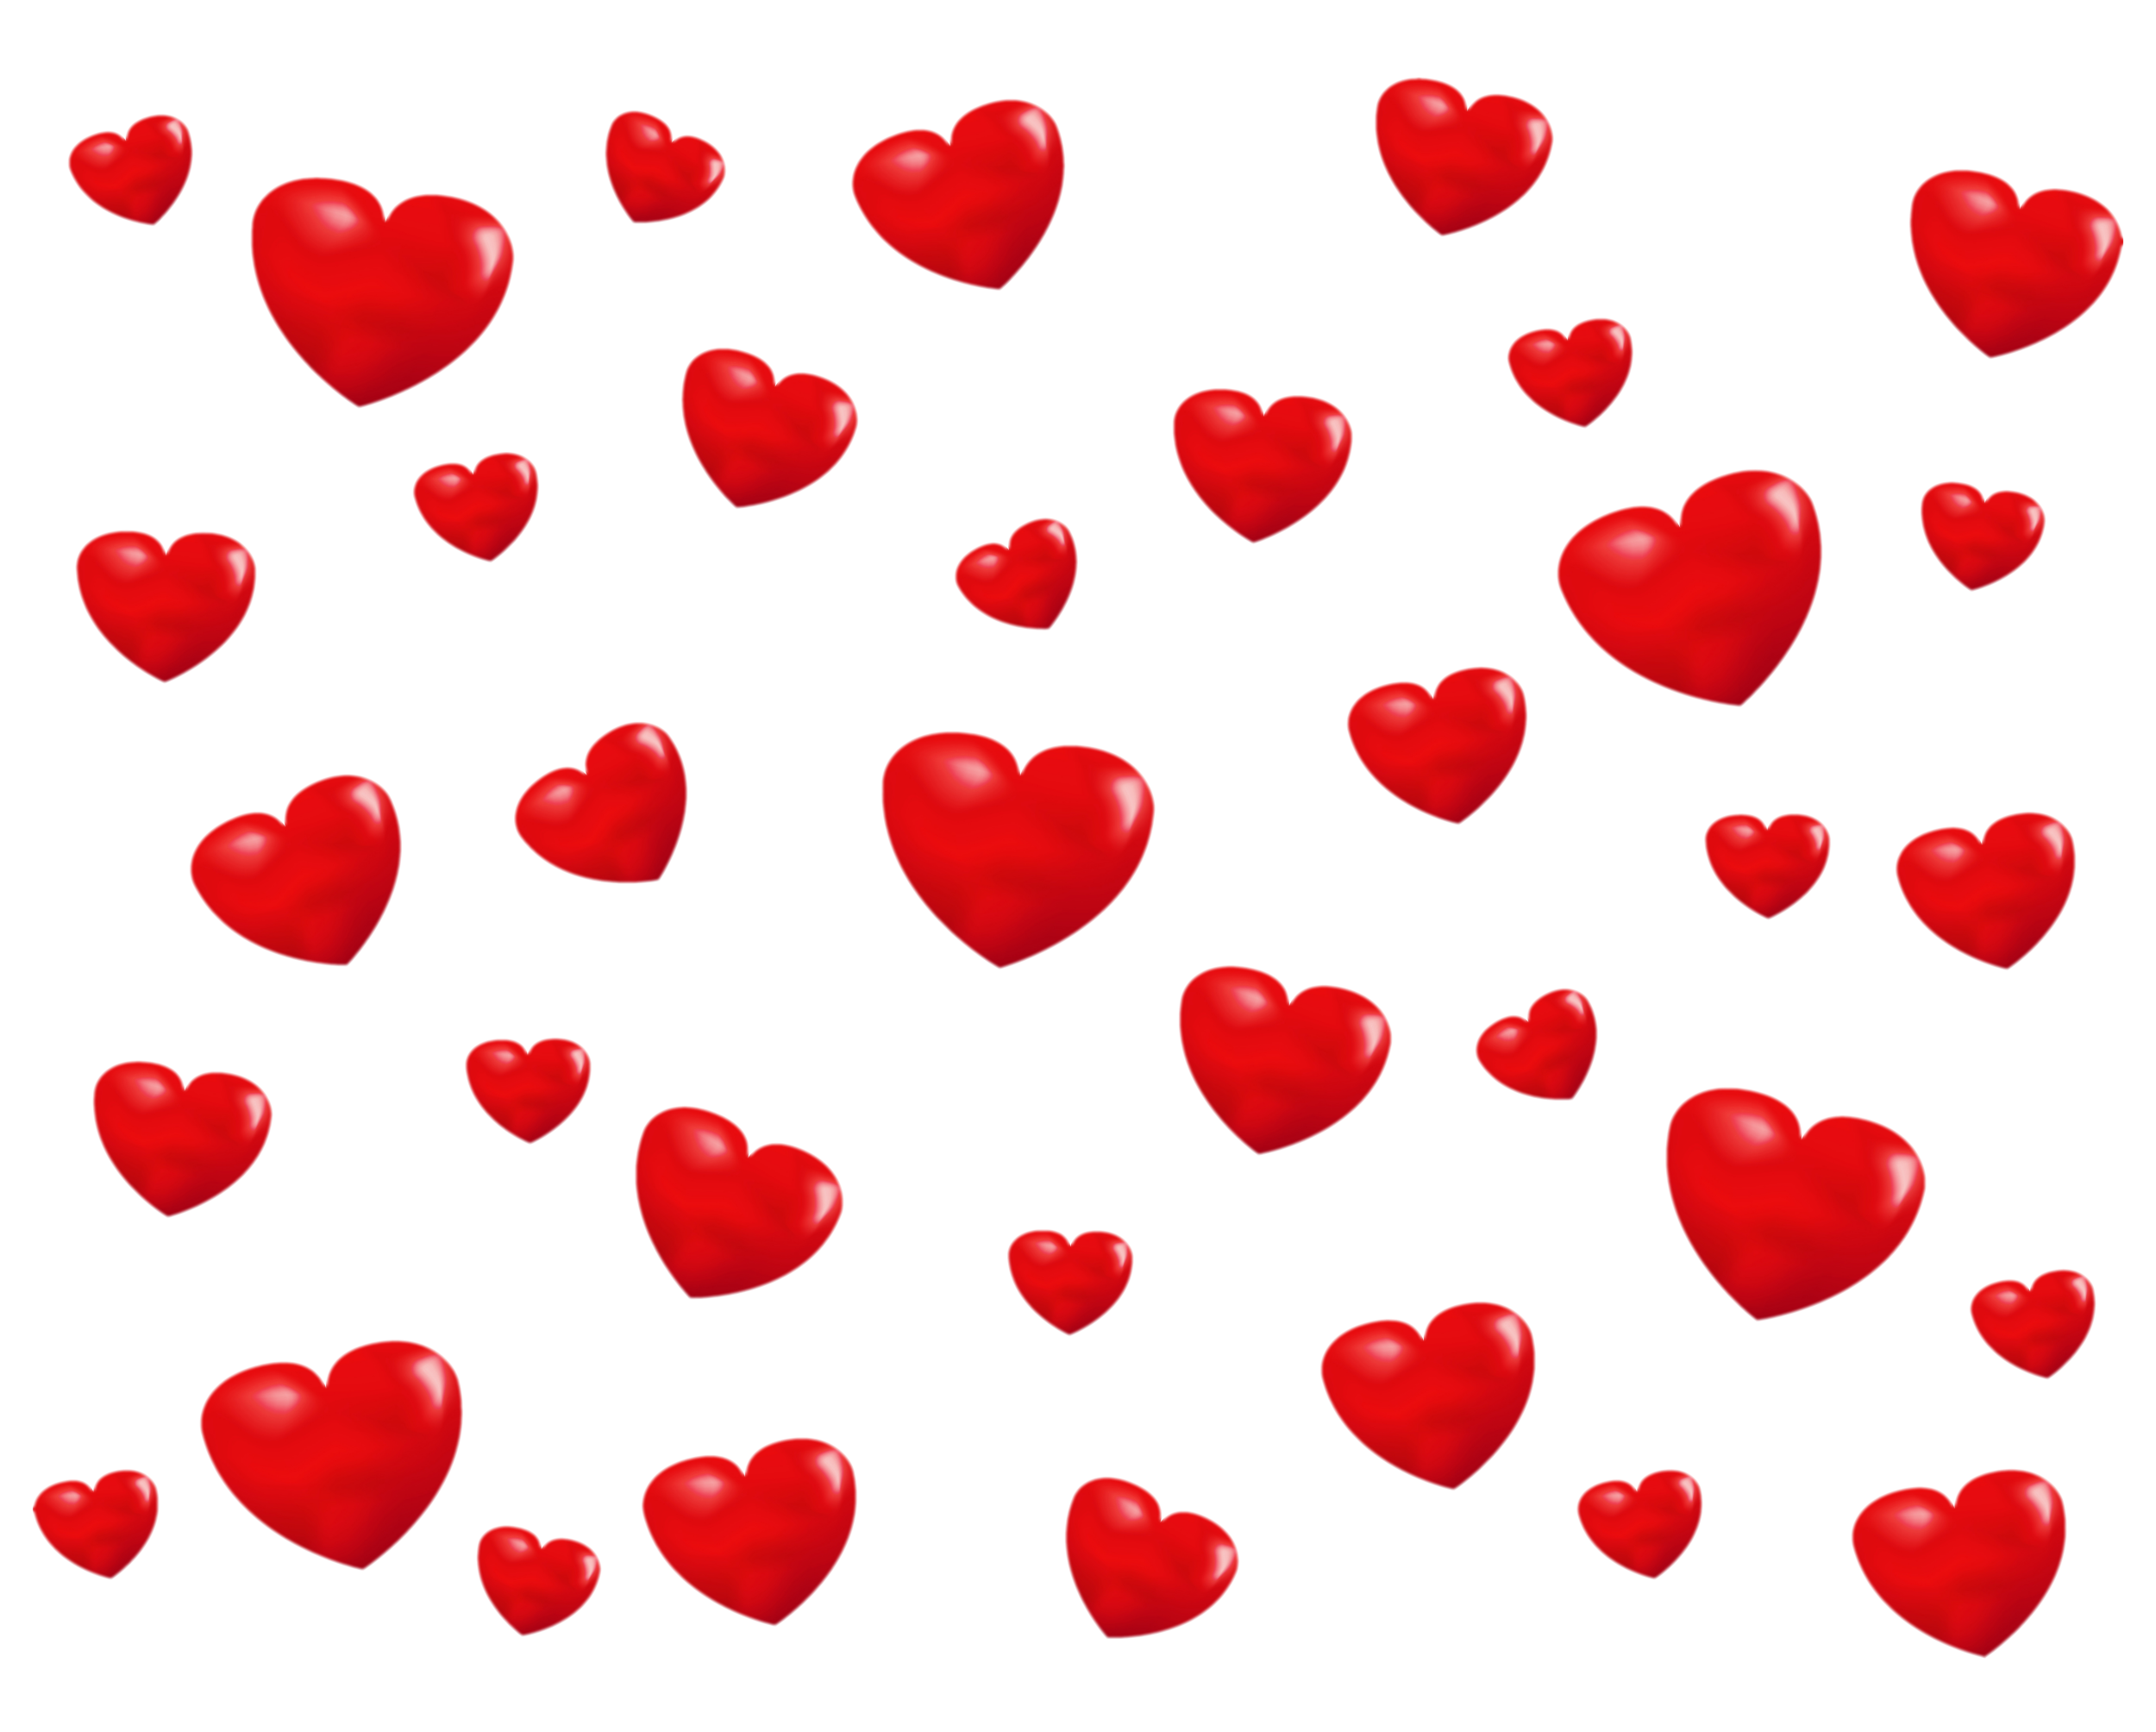 Heart Transparent Background - ClipArt Best